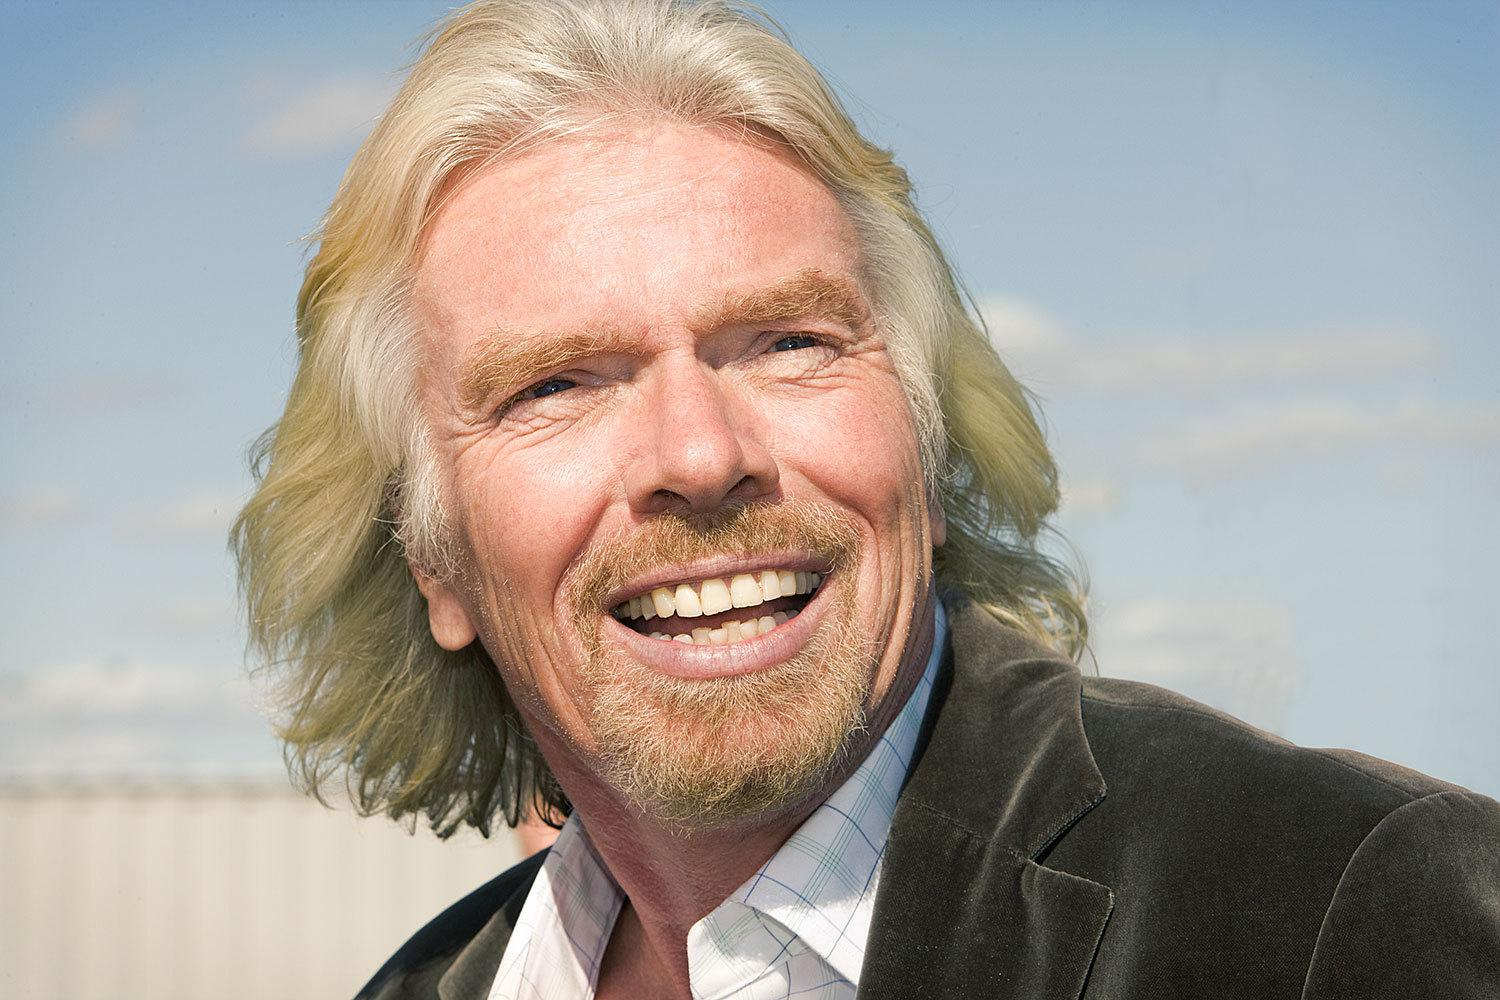 Richard branson naked model